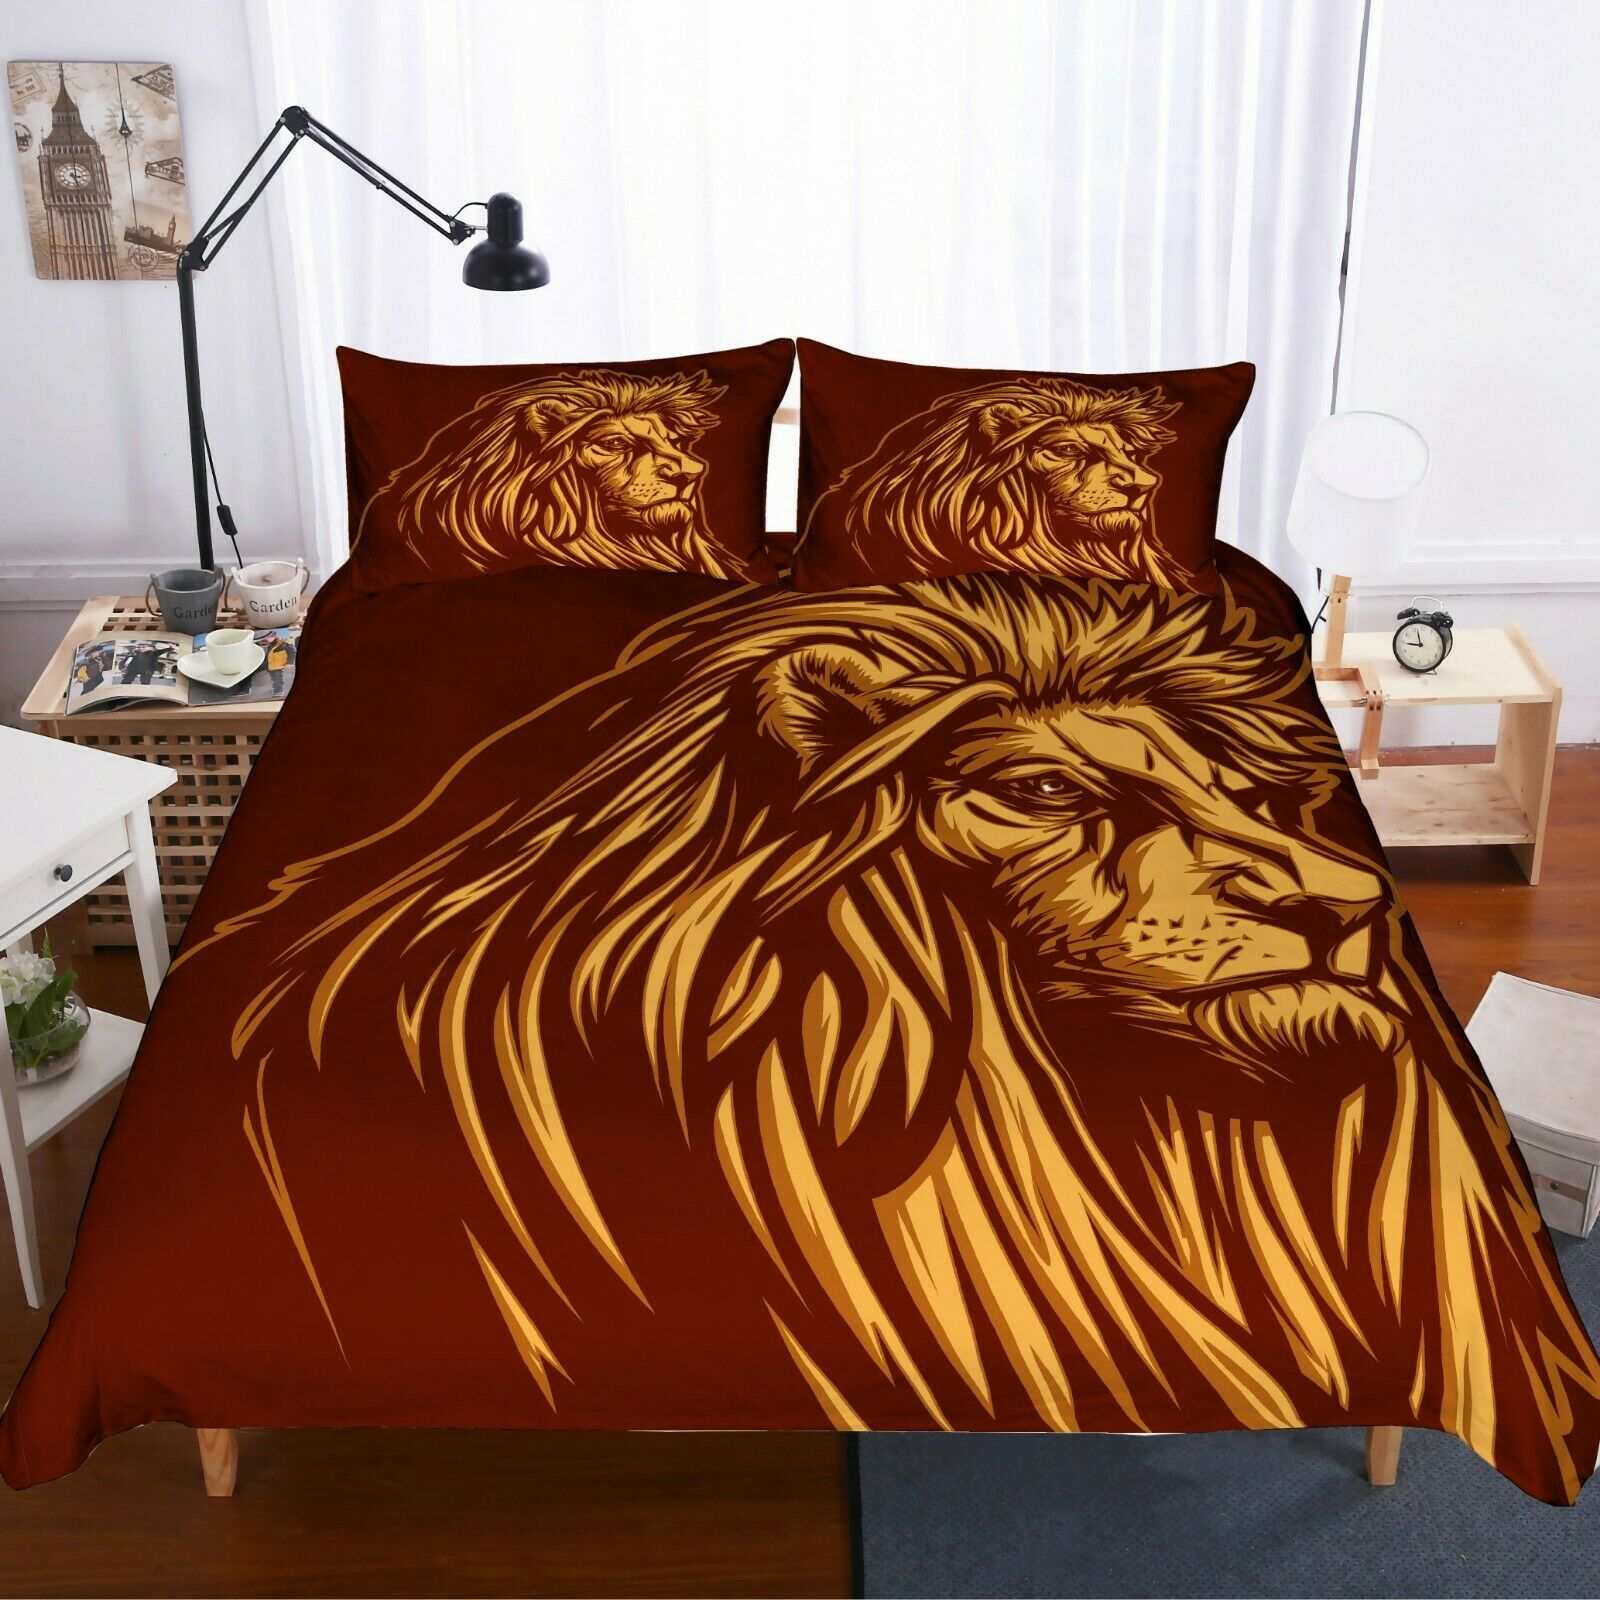 3D oroen Lion Quilt Cover Set Bedding Duvet Cover Single Queen King 3pcs 12